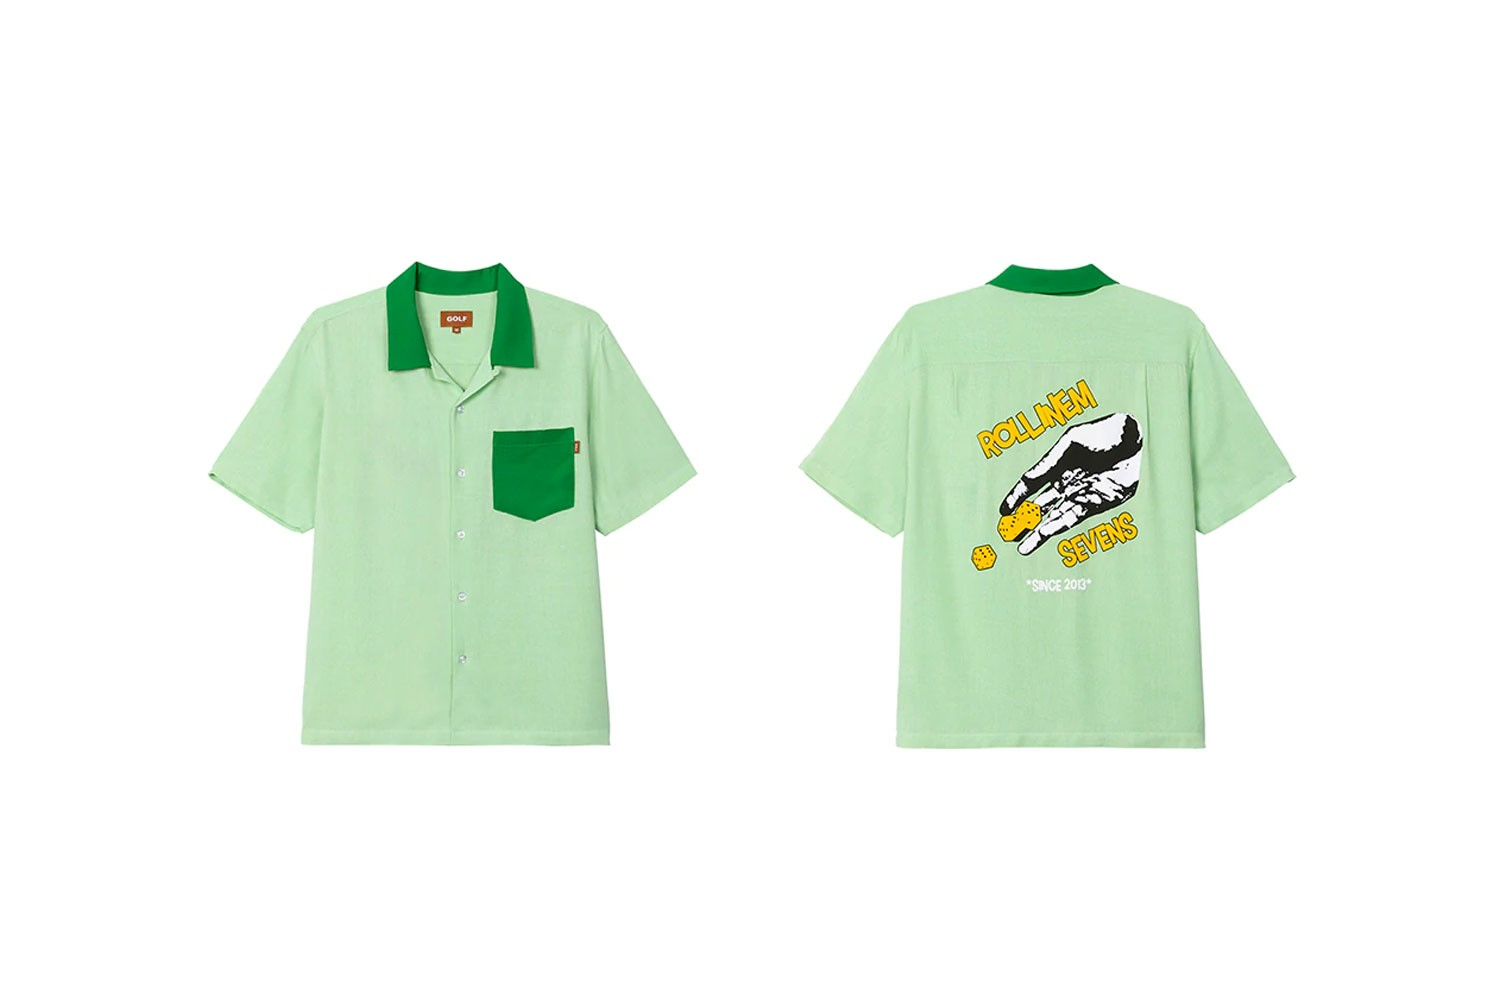 tyler the creator golf wang golf le fleur bombers shirts wallets sunglasses caps